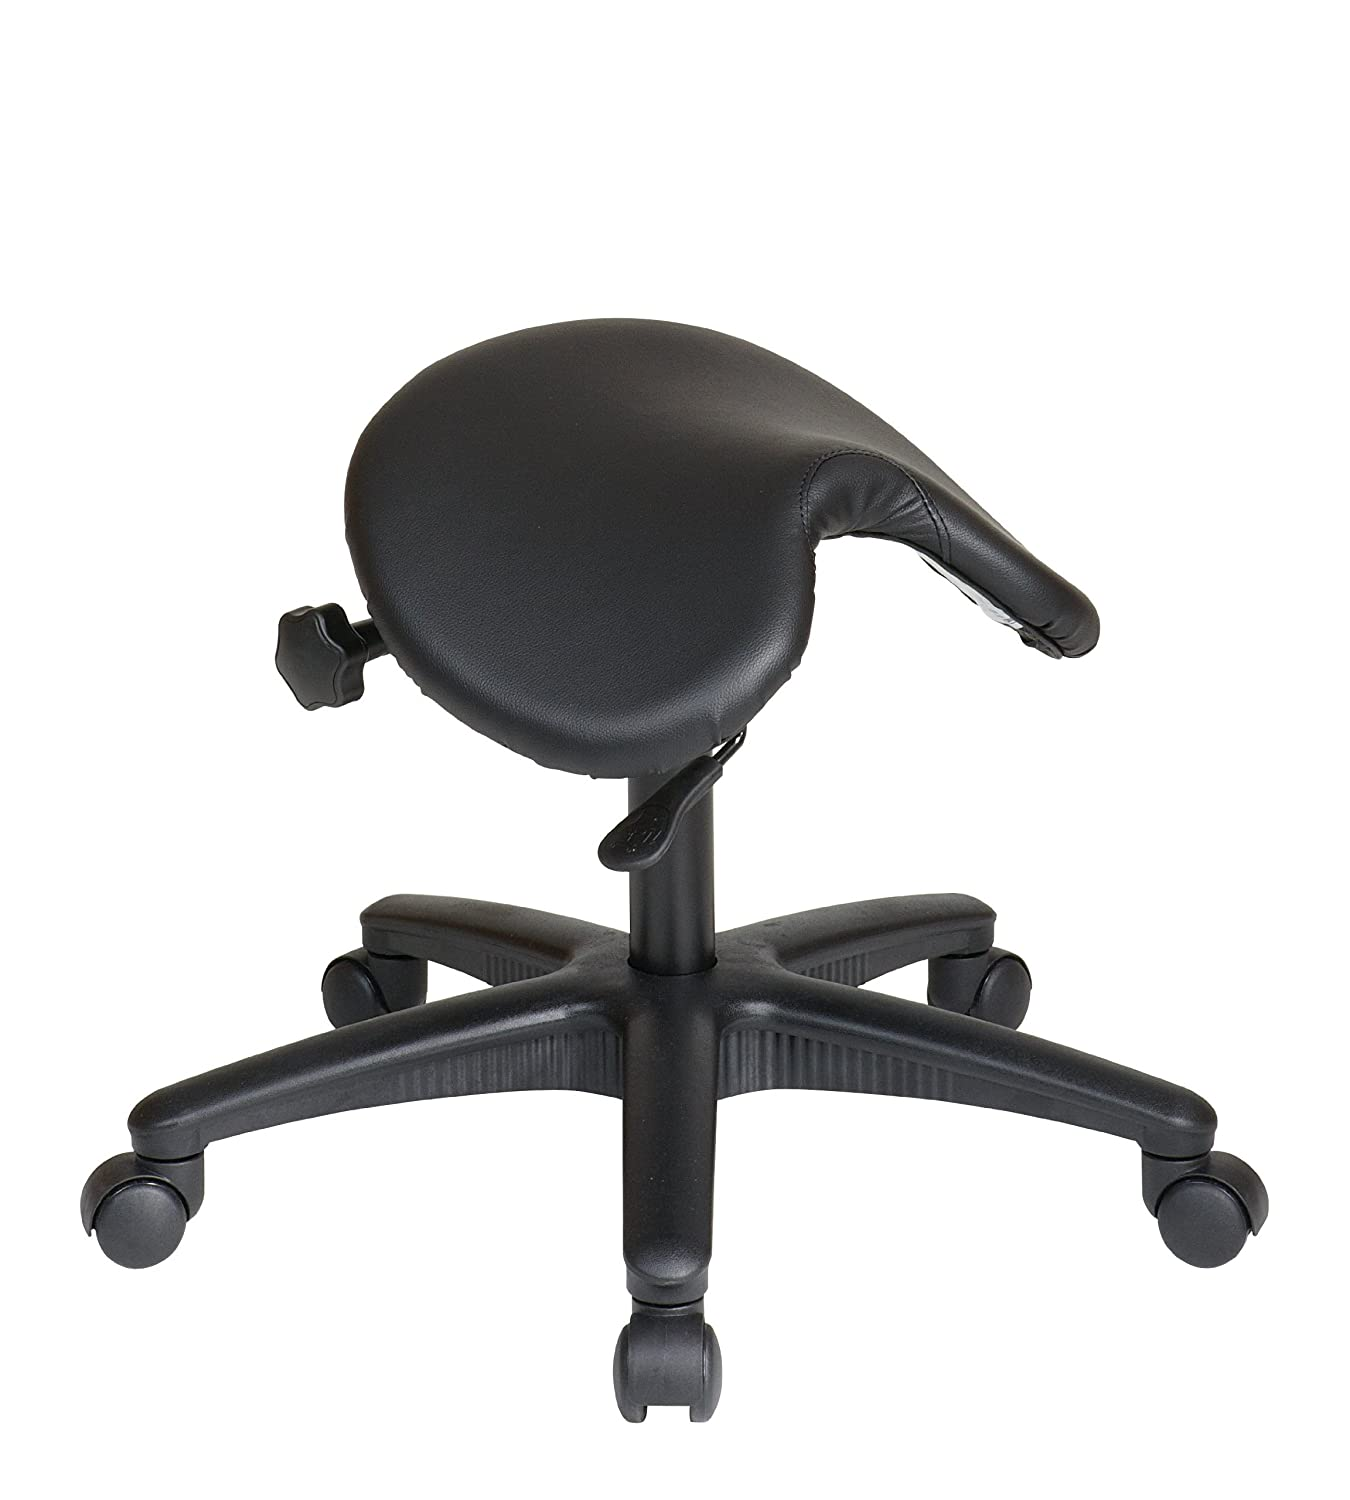 ergonomic chair betterposture saddle chair. amazoncom office star backless stool with saddle seat and angle adjustment black 19 to 24inch adjustable height kitchen u0026 dining ergonomic chair betterposture p